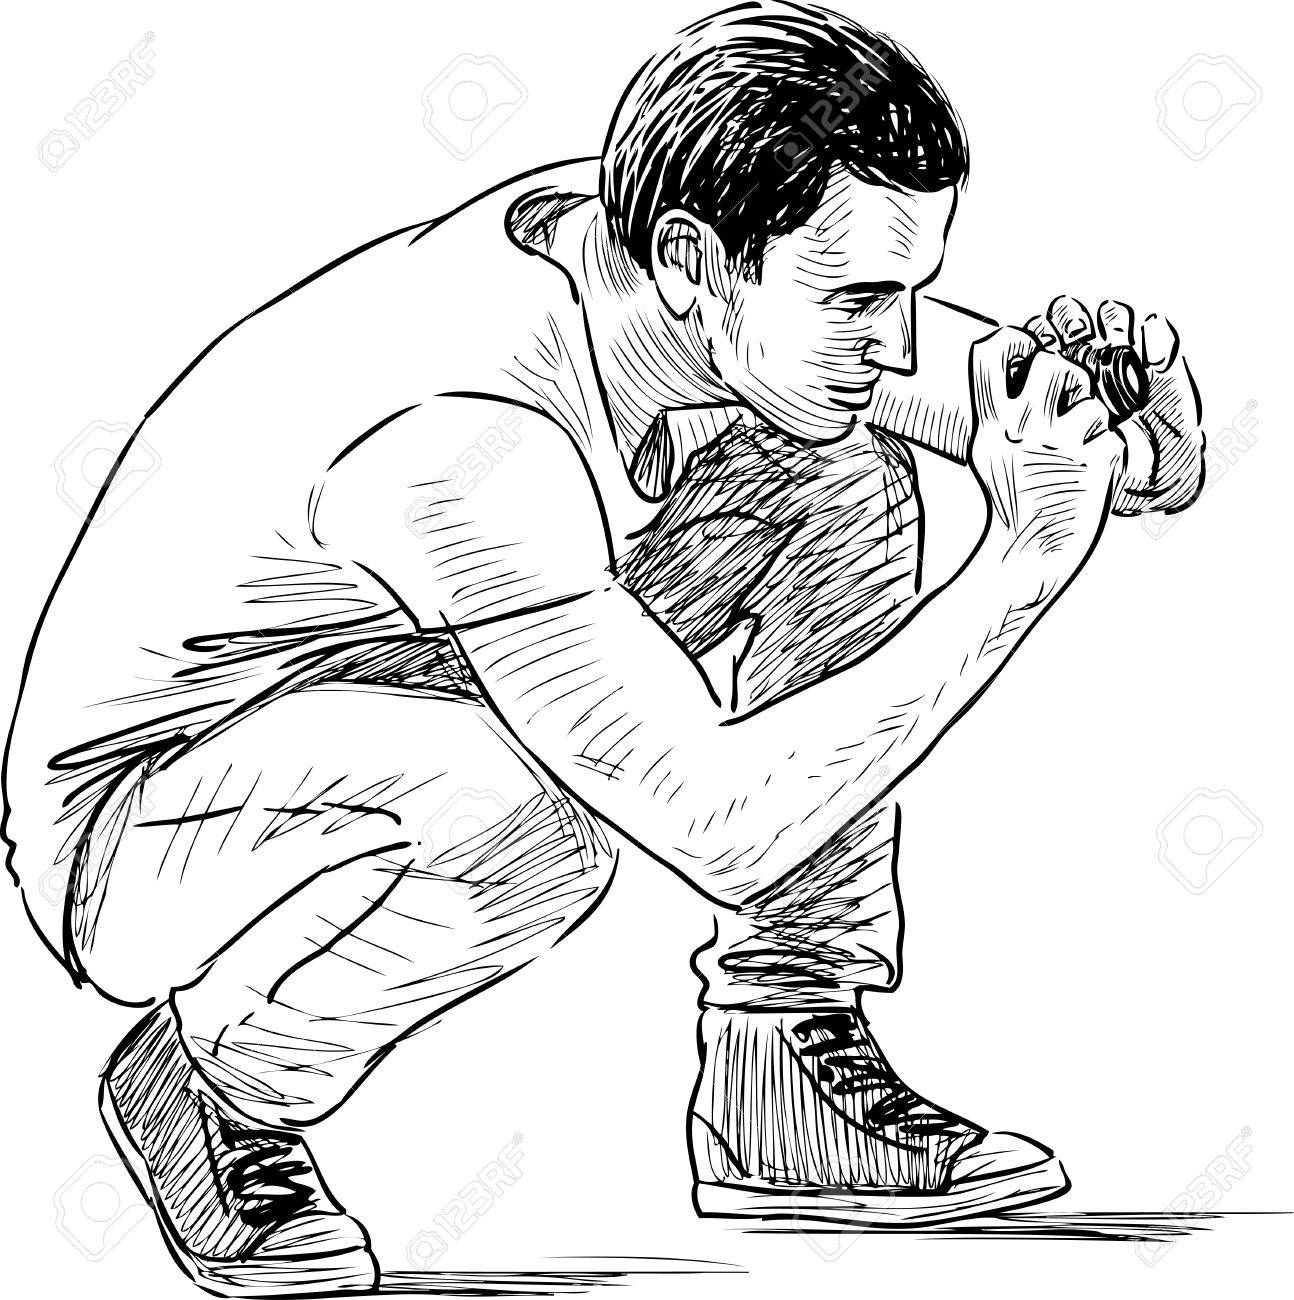 1294x1300 Sketch Of A Guy Taking A Pfoto Royalty Free Cliparts, Vectors,